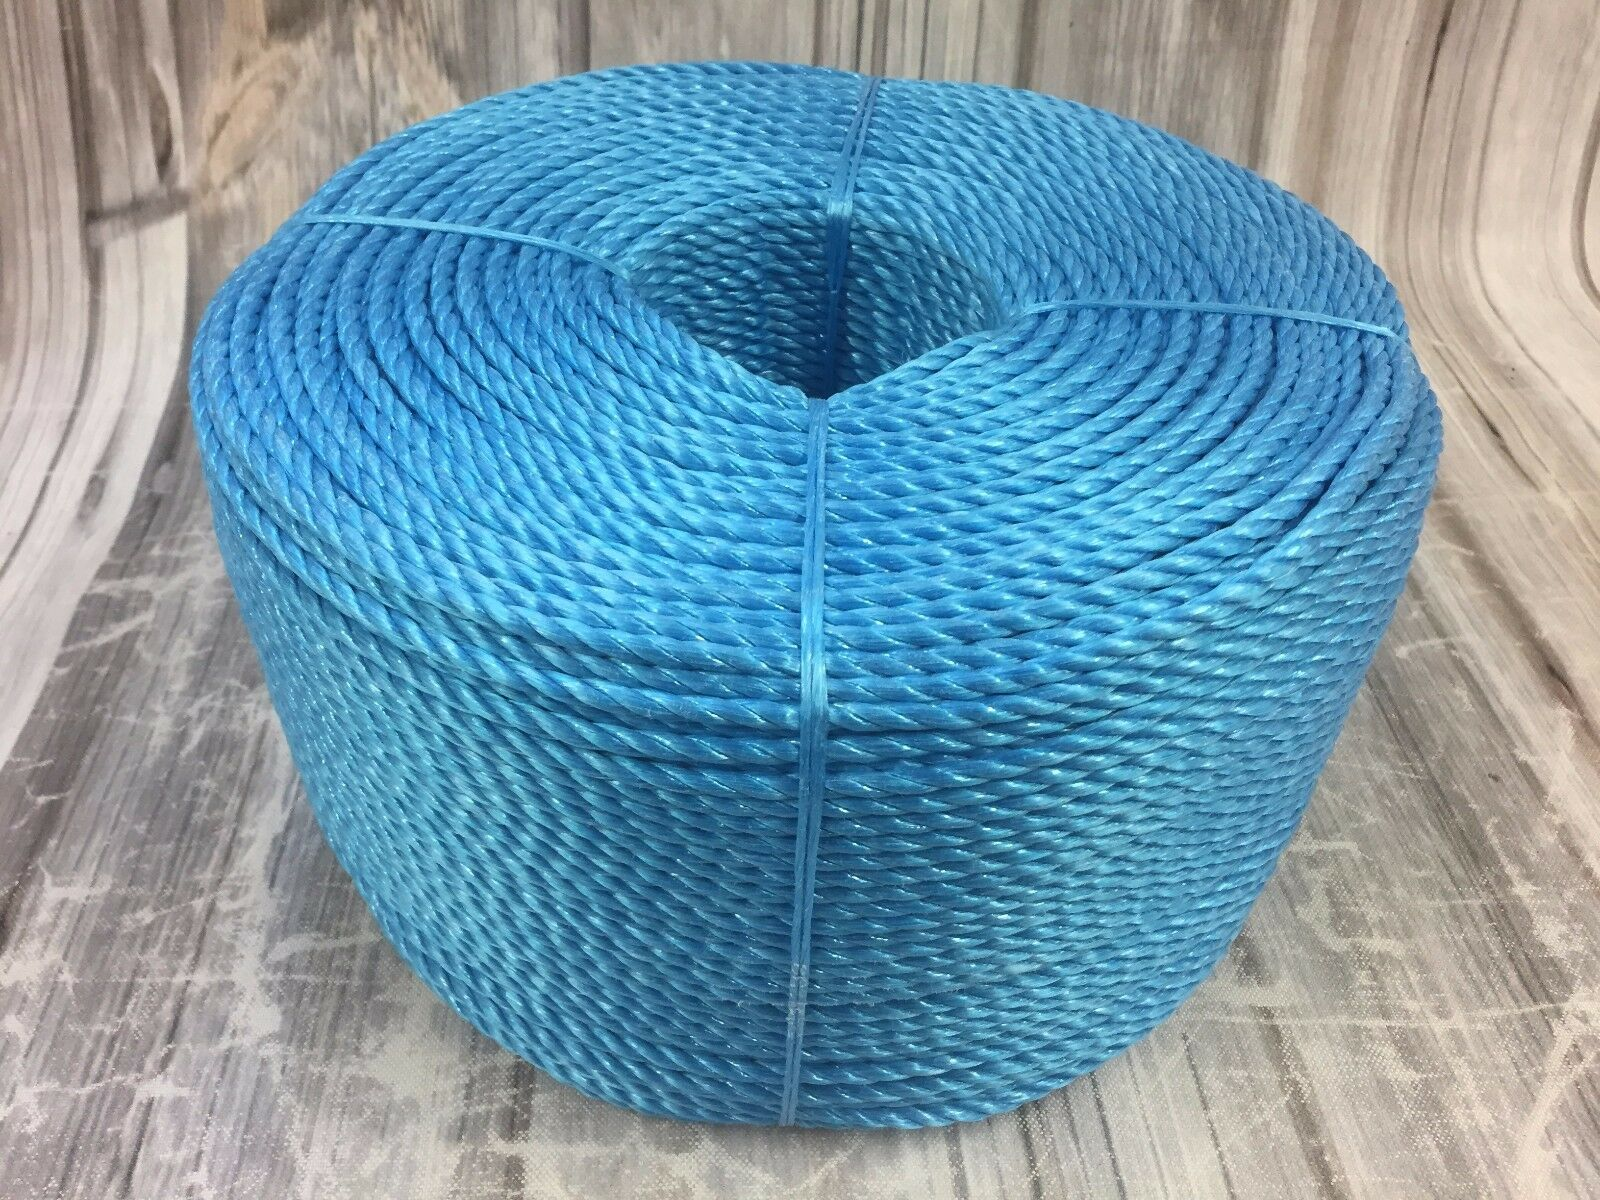 6mm bluee Poly Rope x 500 Metre Coil, bluee Poly Rope Coils, Polypropylene Rope